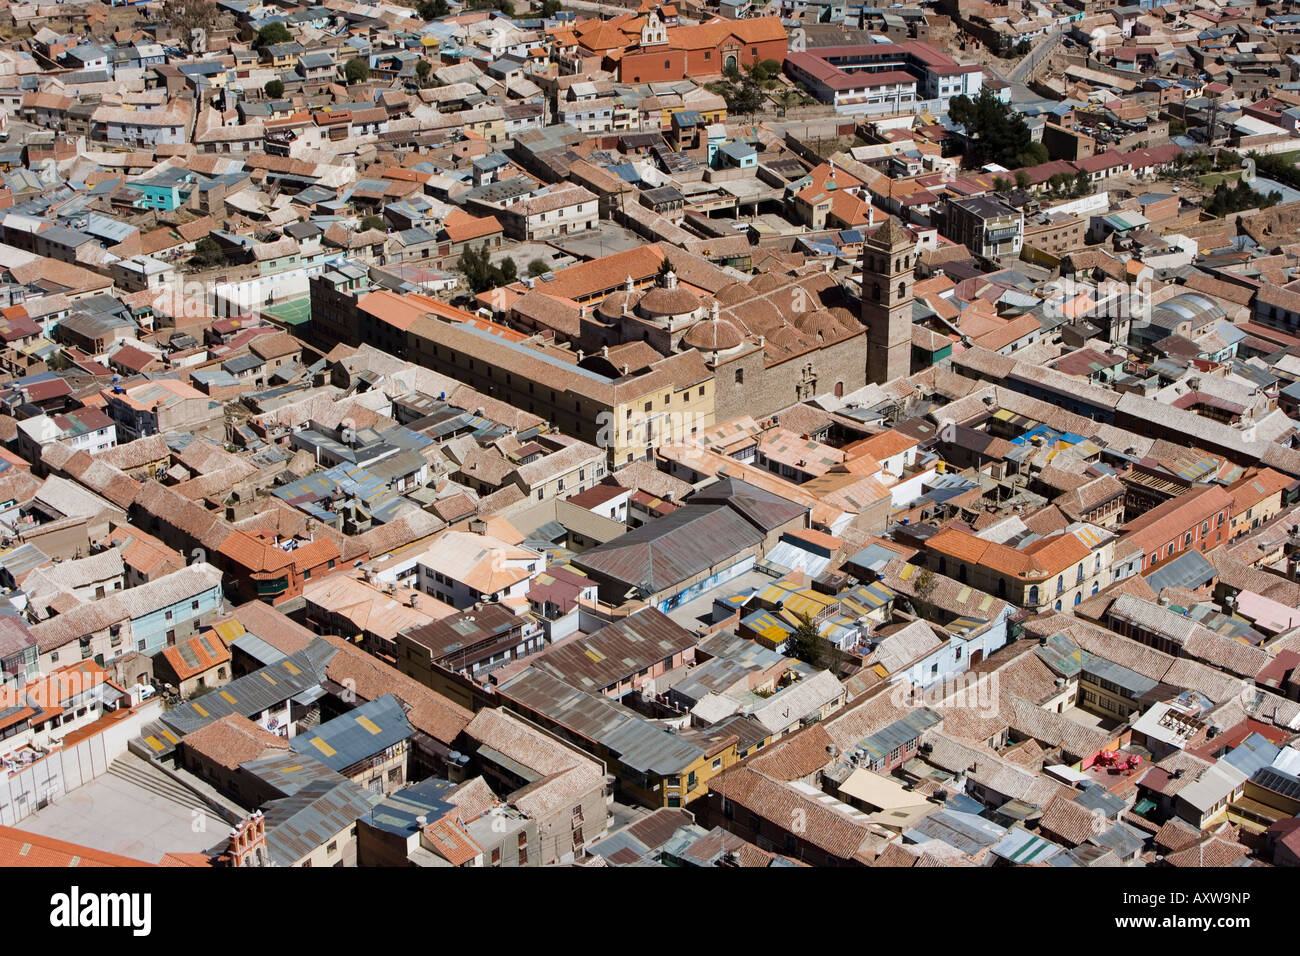 Aerial view, Potosi, Bolivia, South America - Stock Image